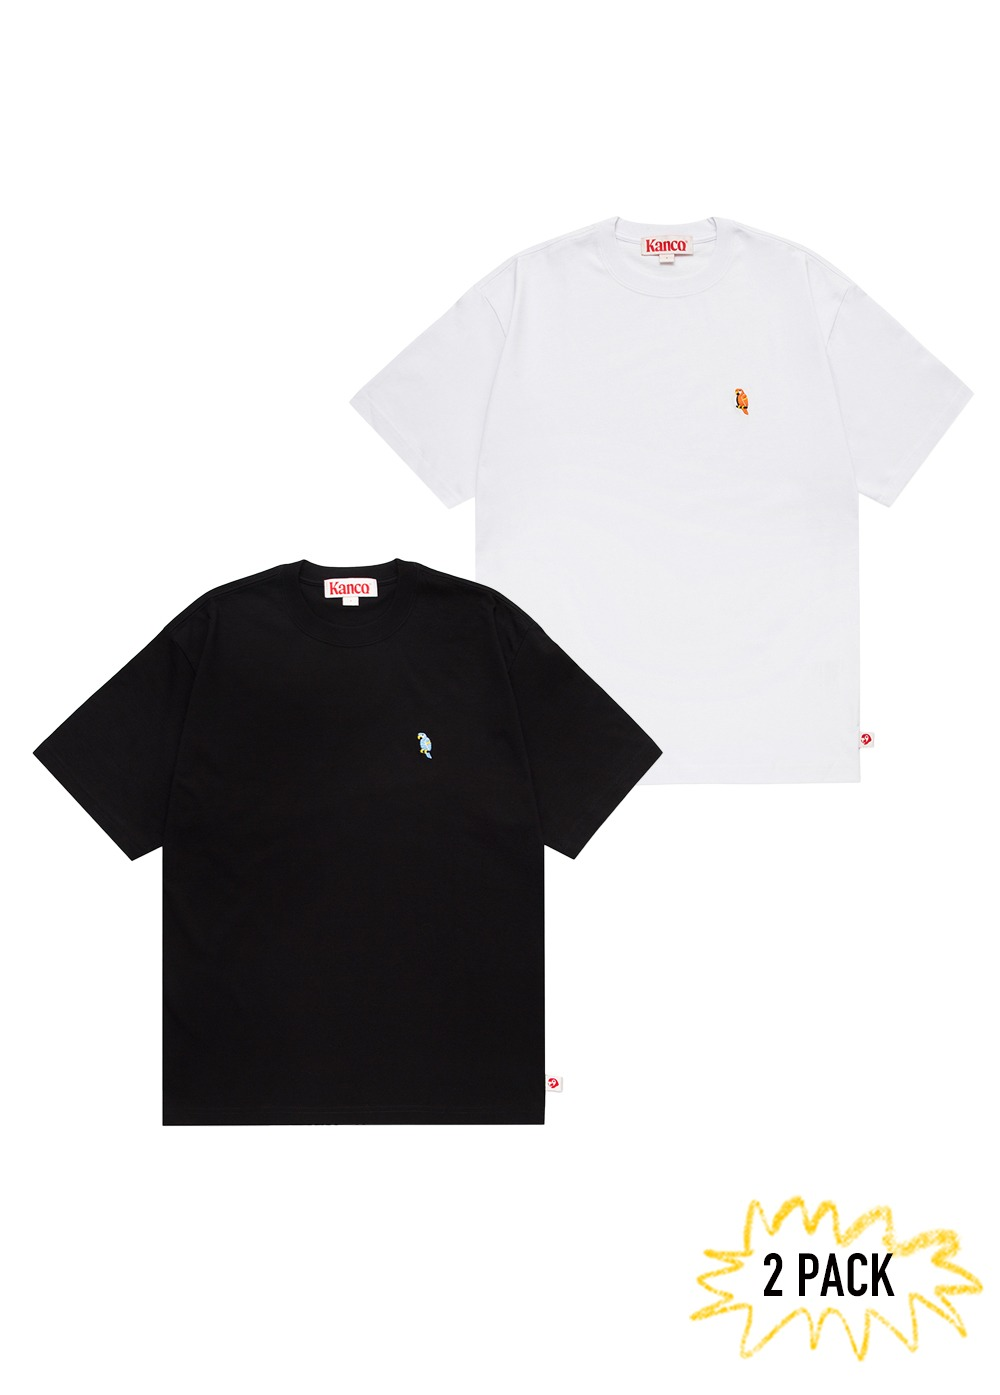 KANCO FULL LOGO TEE 2pack